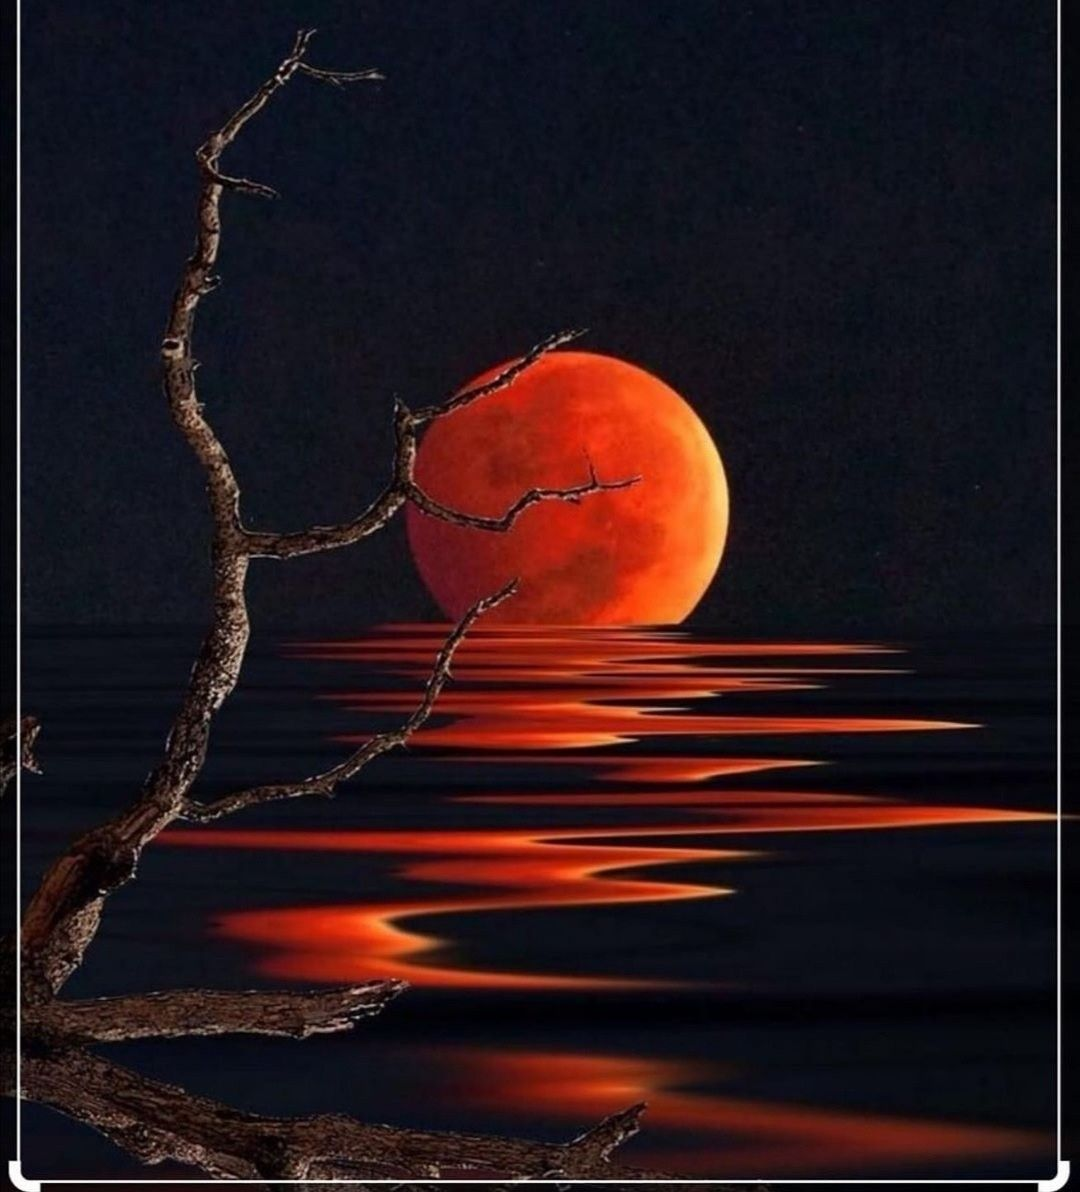 Pin By Zey Y On Natura In 2020 Beautiful Moon Moon Painting Moon Photography